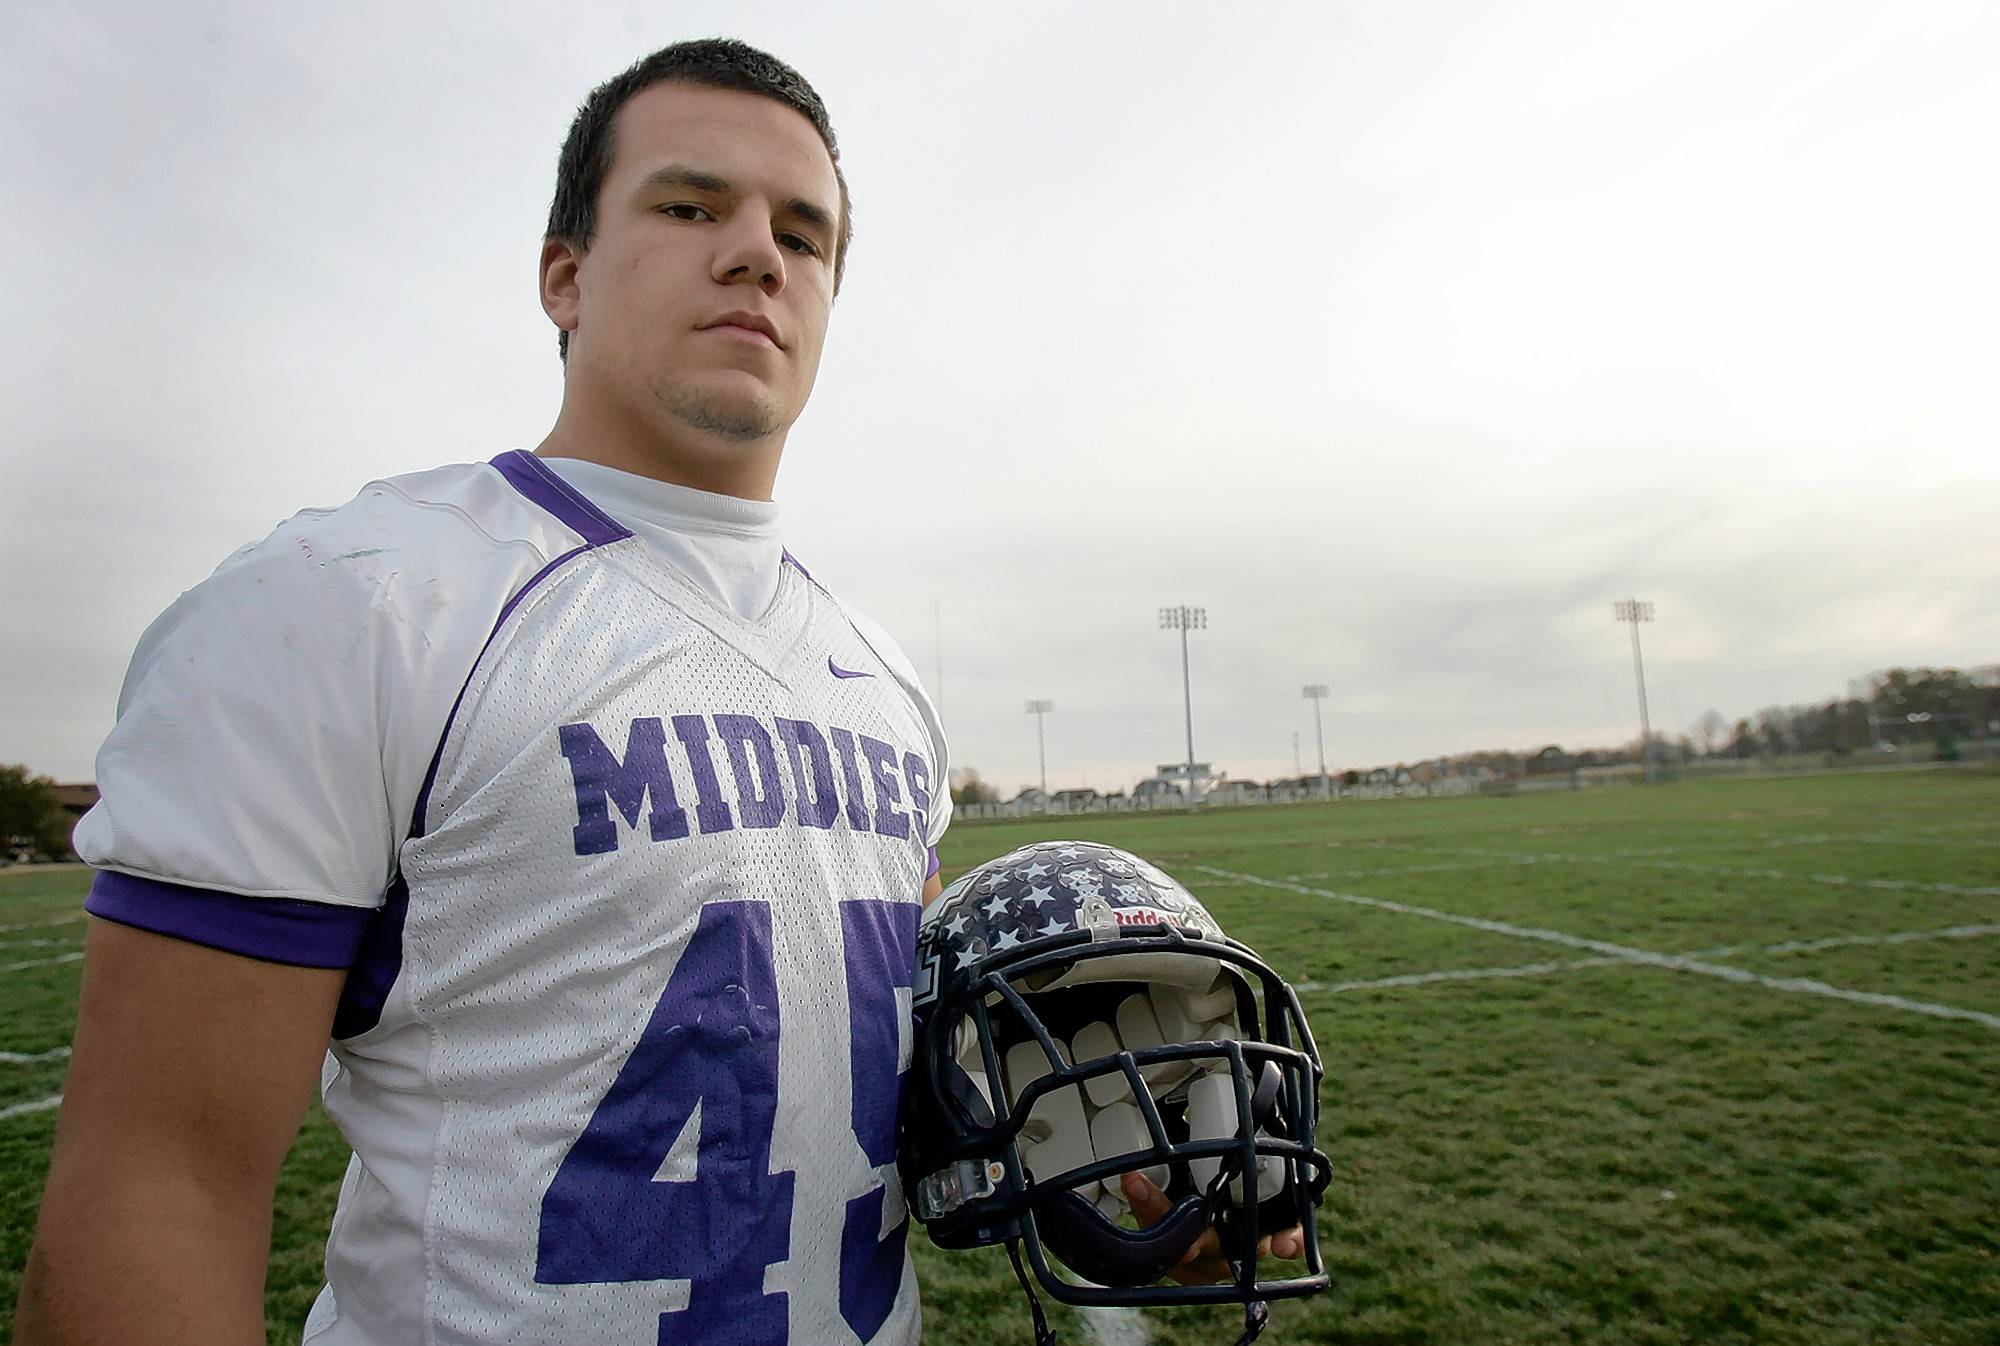 A captain on the baseball team, Kyle Schwarber was also a football captain and starting linebacker for the Middletown Middies as a high school senior.